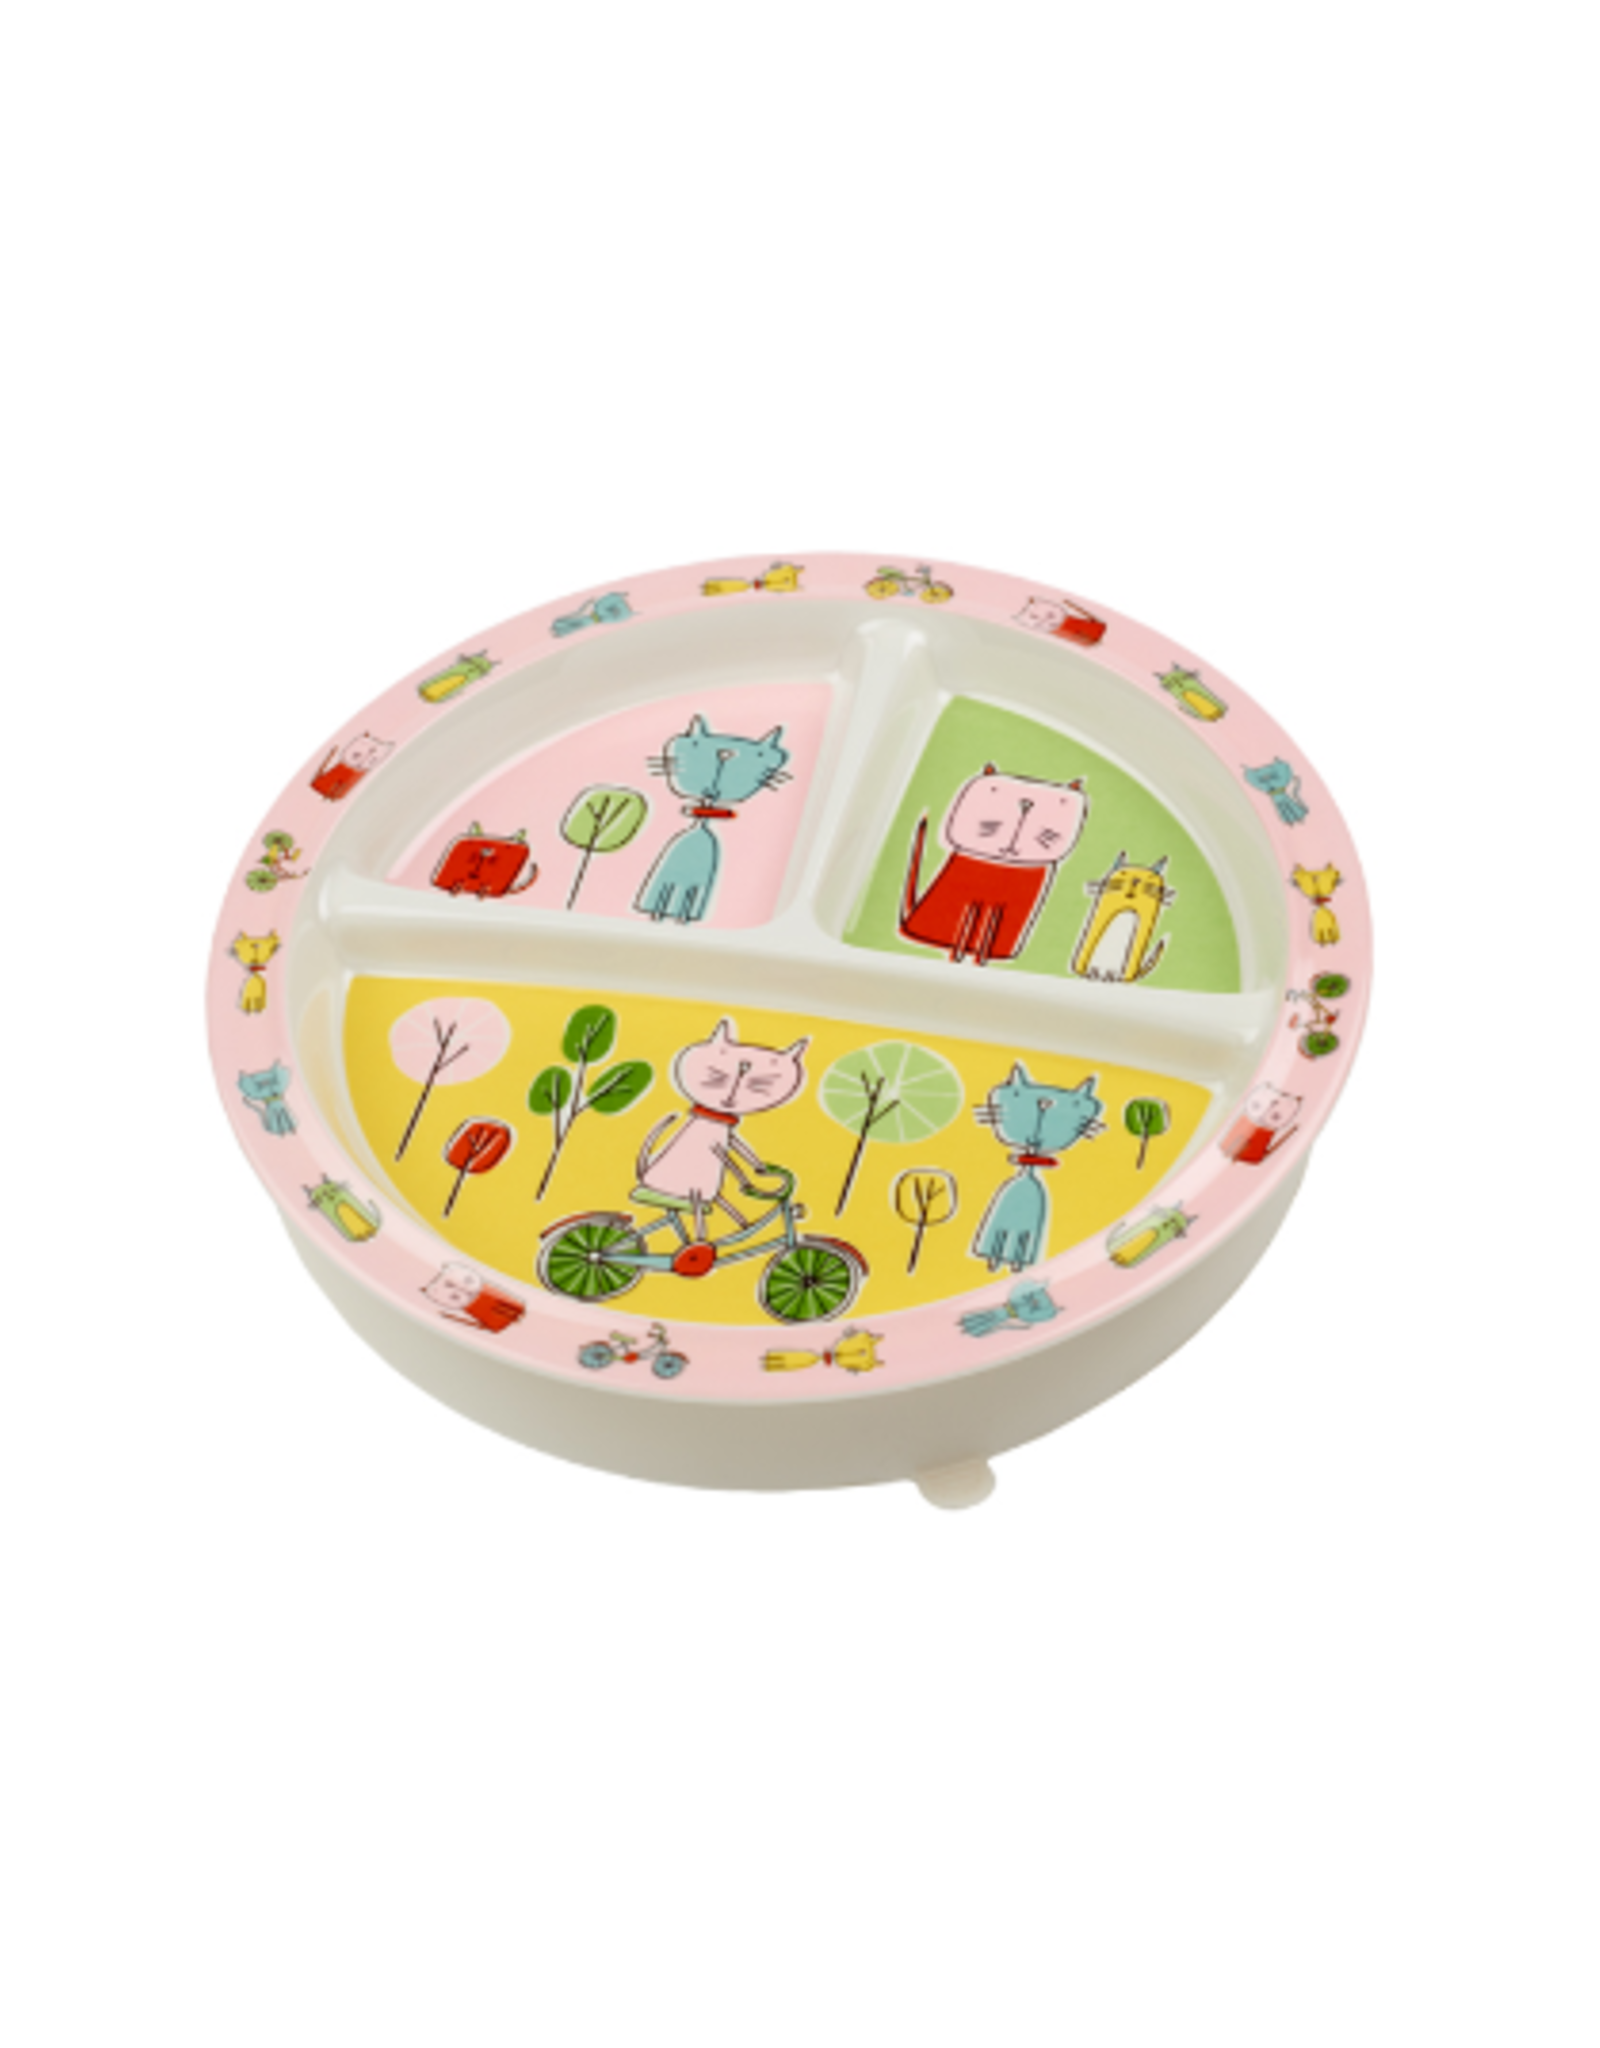 ORE Originals Divided Suction Plate, Go Kitty